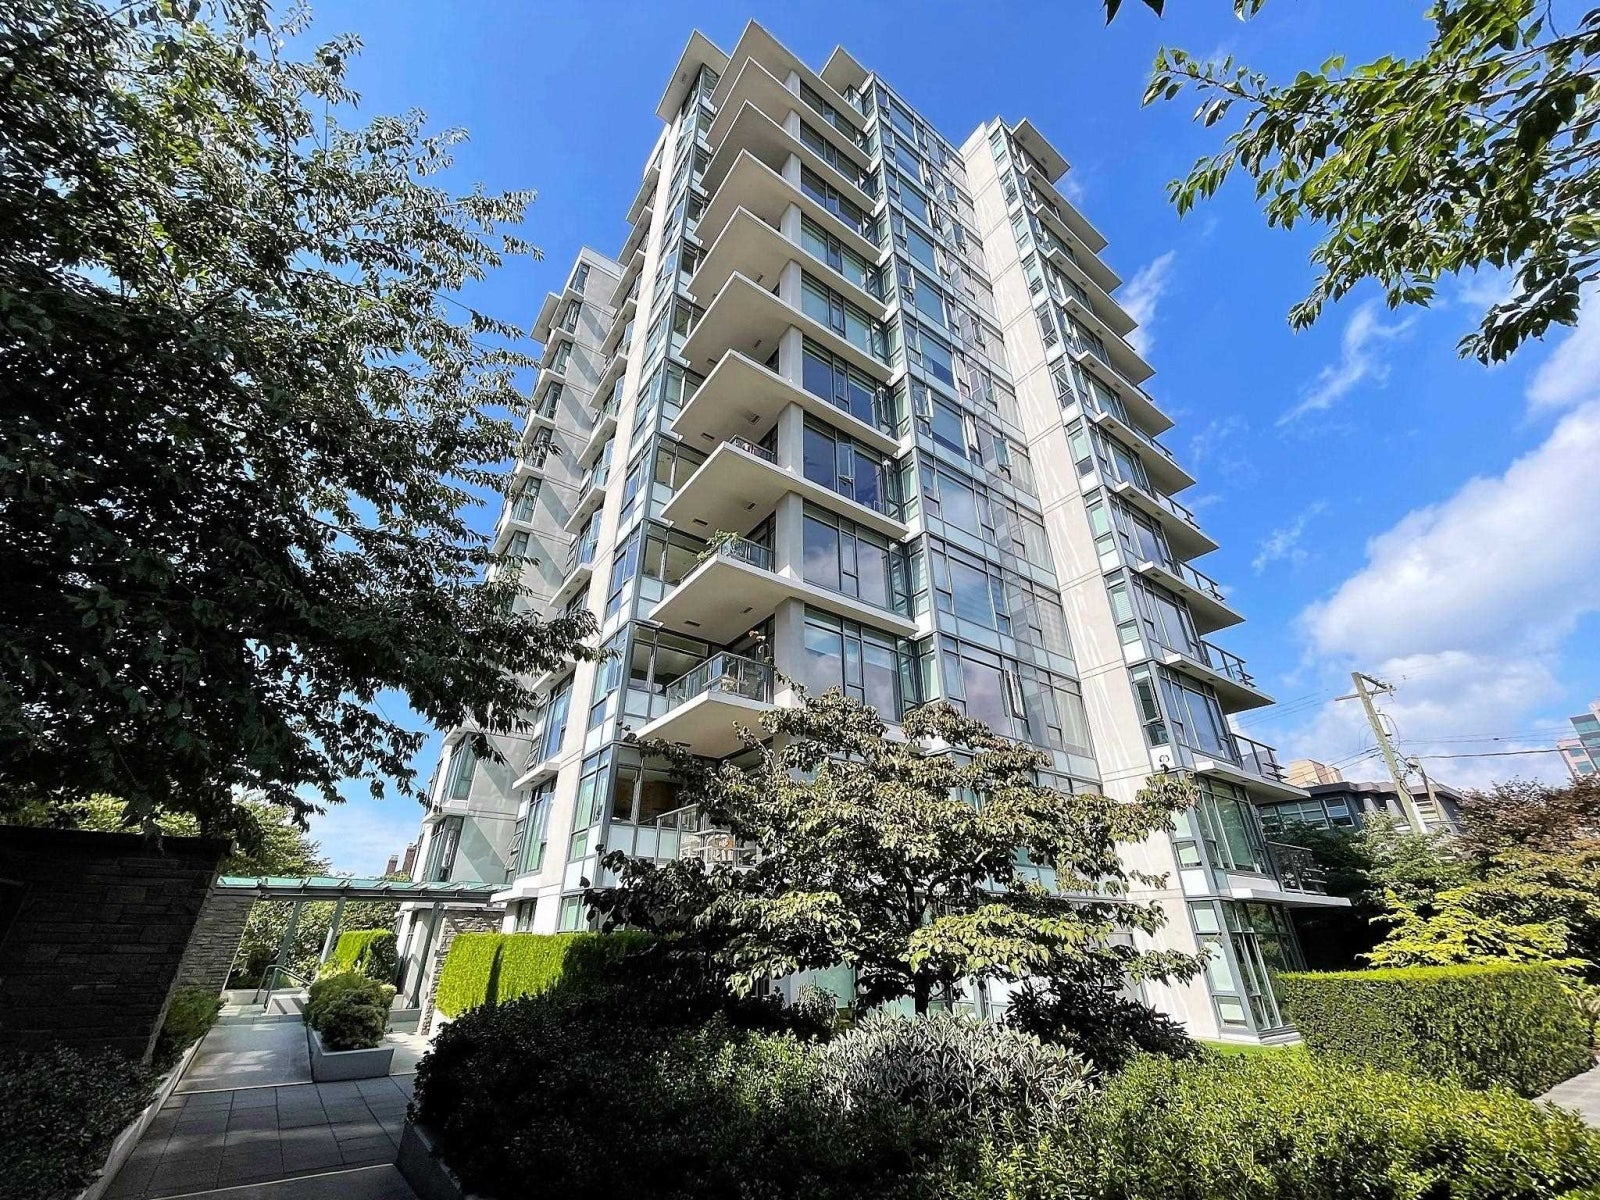 803 1333 W 11TH AVENUE - Fairview VW Apartment/Condo for sale, 2 Bedrooms (R2616288) #1